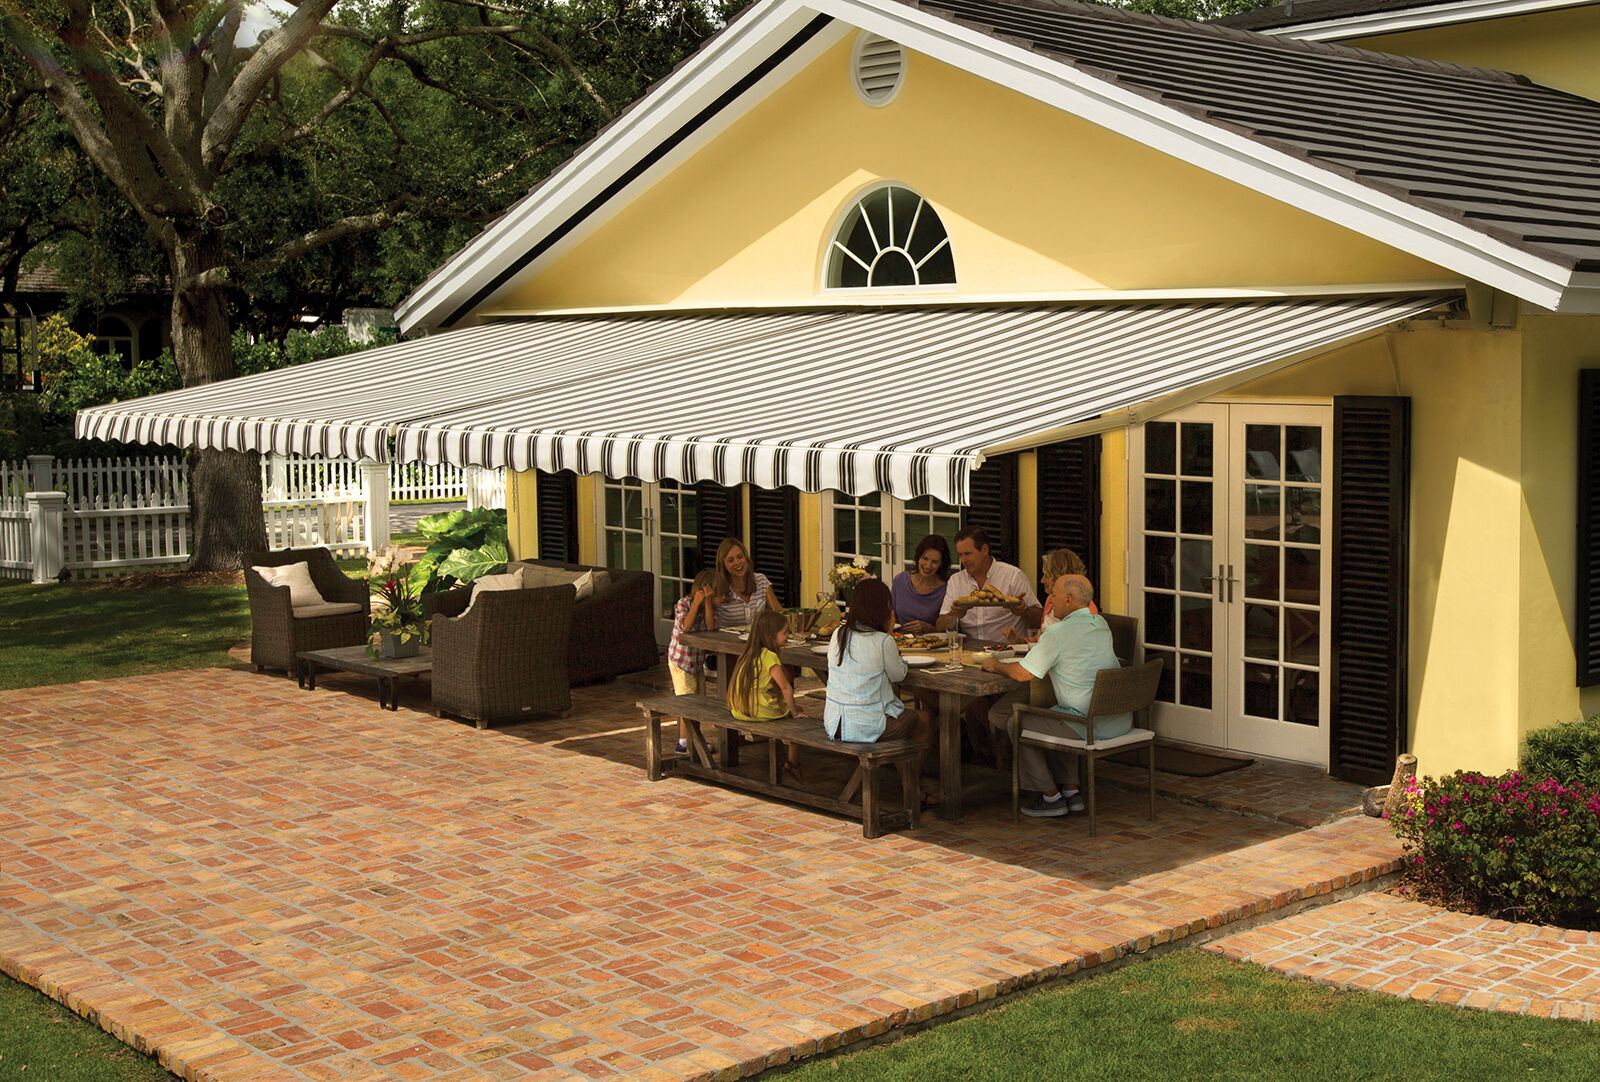 SunSetter Motorized Retractable Awning 18 x 10 ft. Deck ...